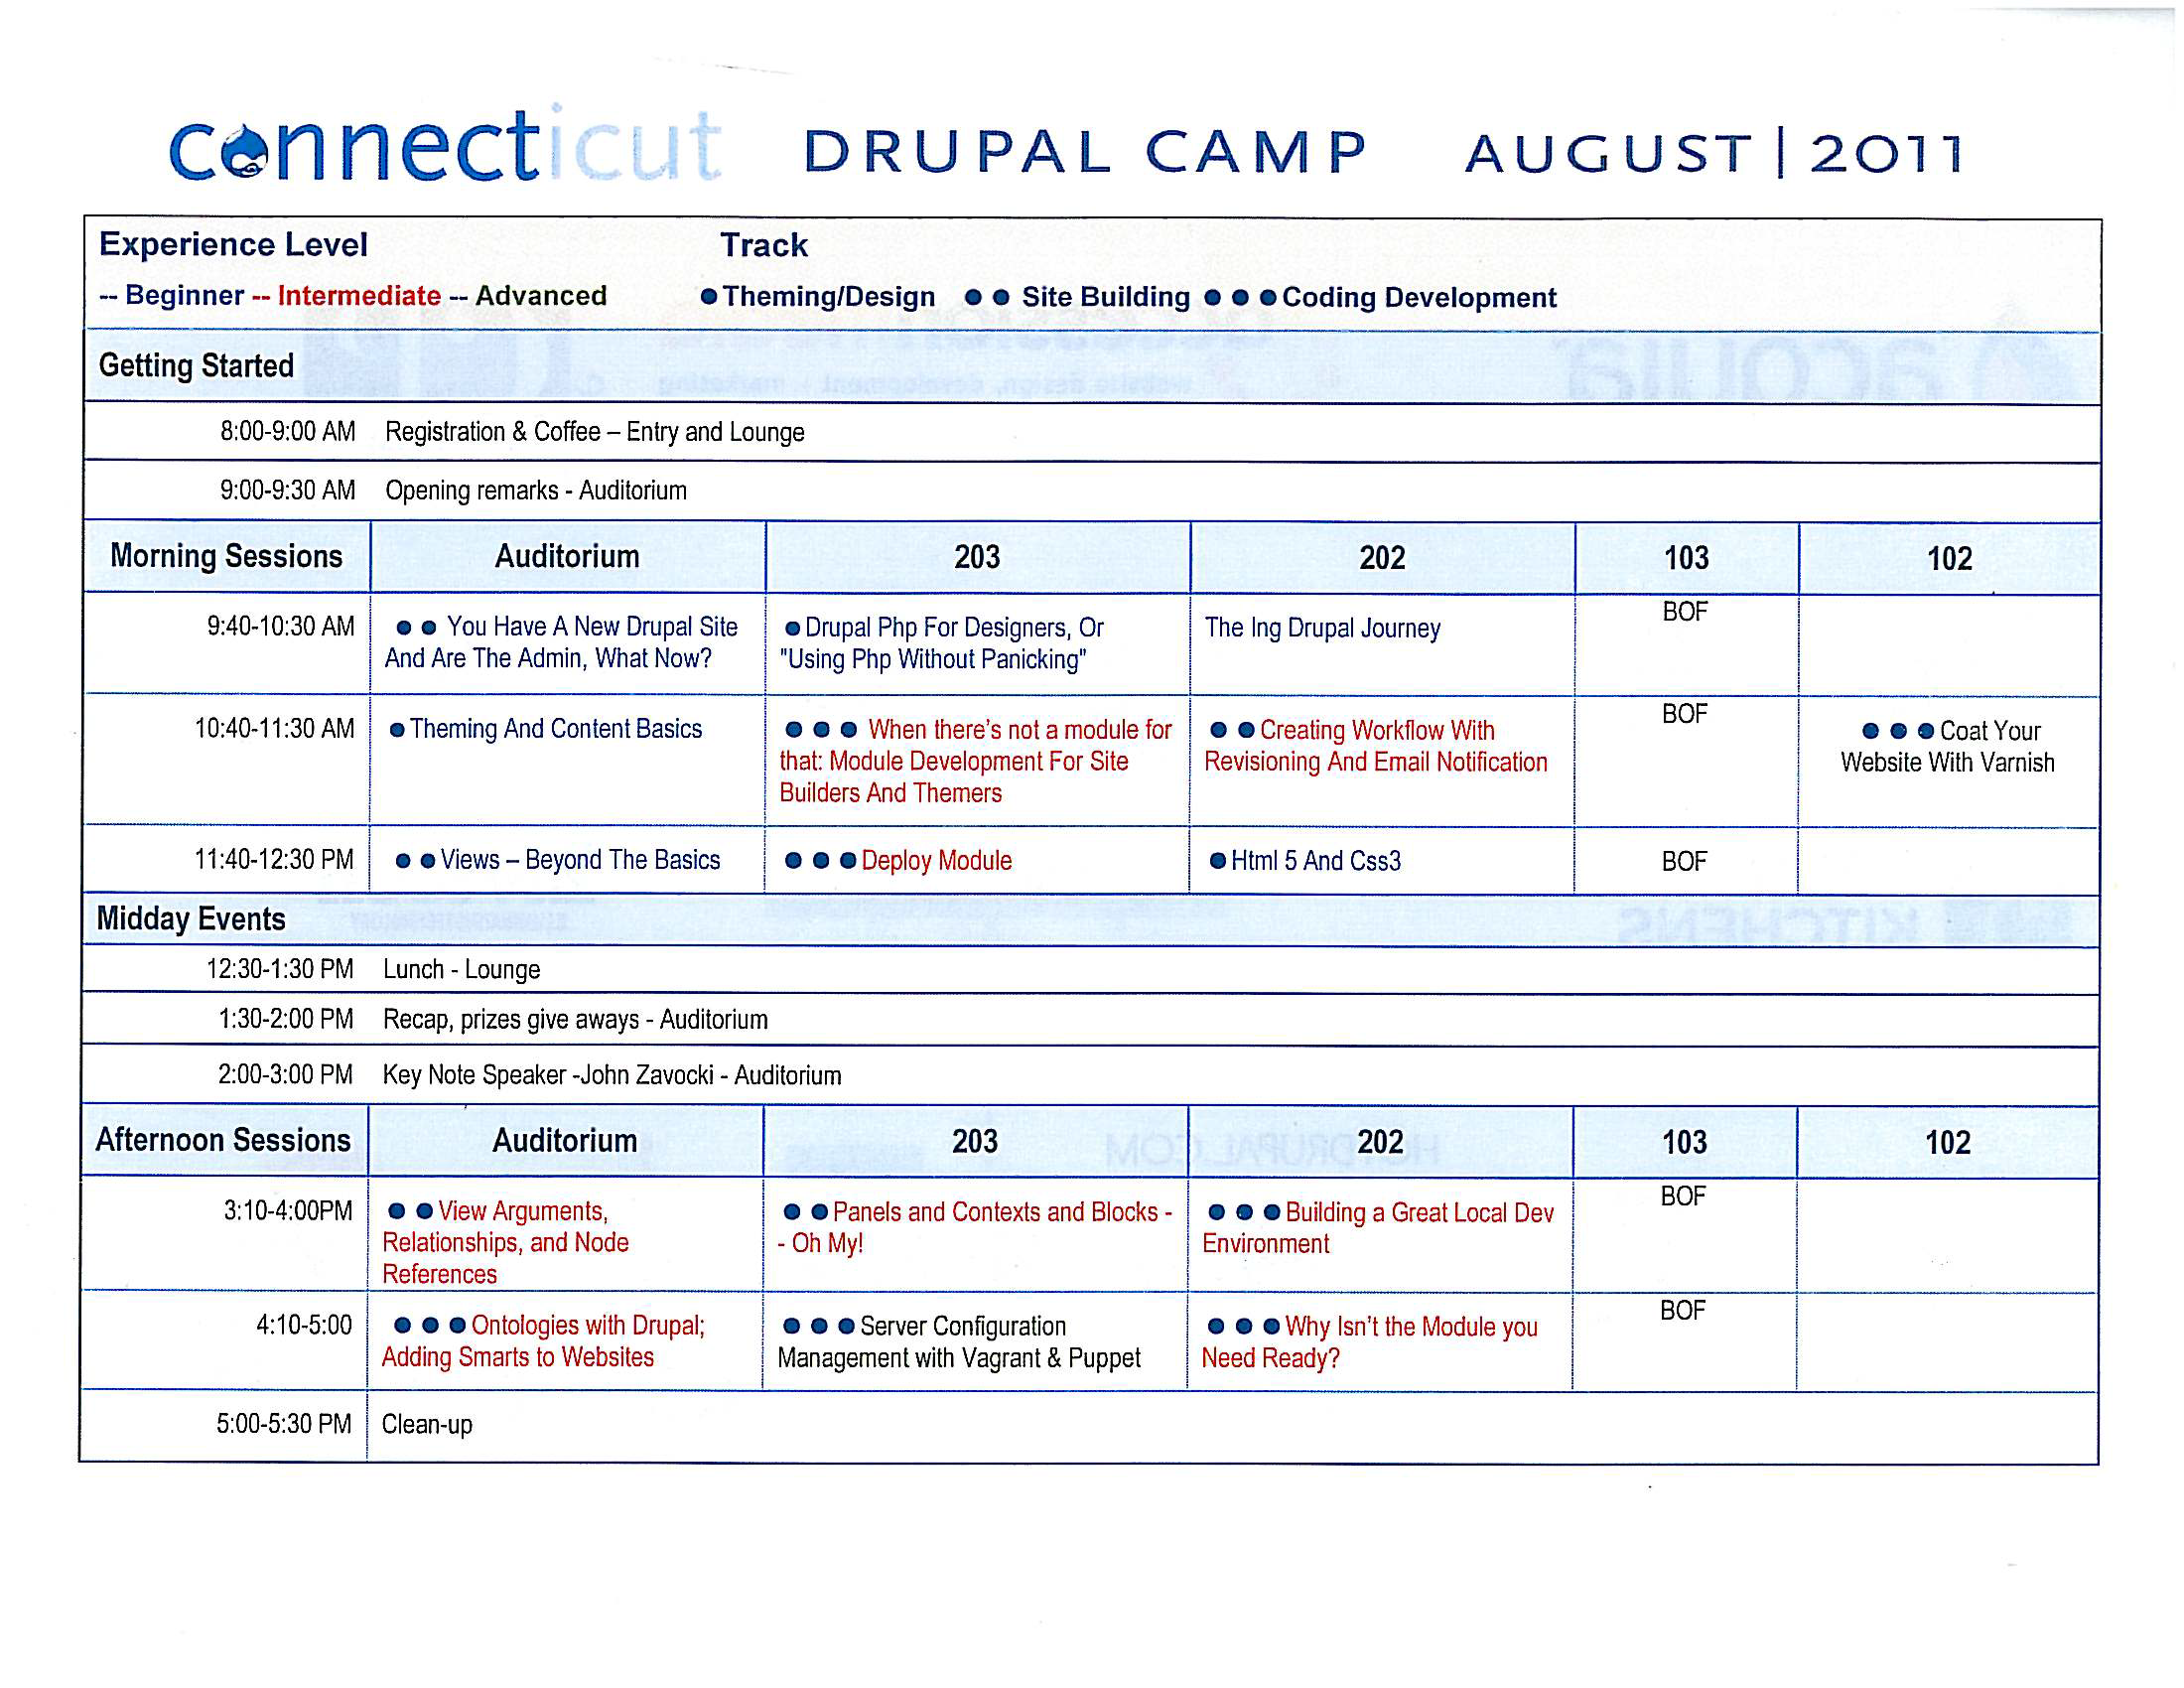 Program for DrupalCamp CT 2011 - click for larger